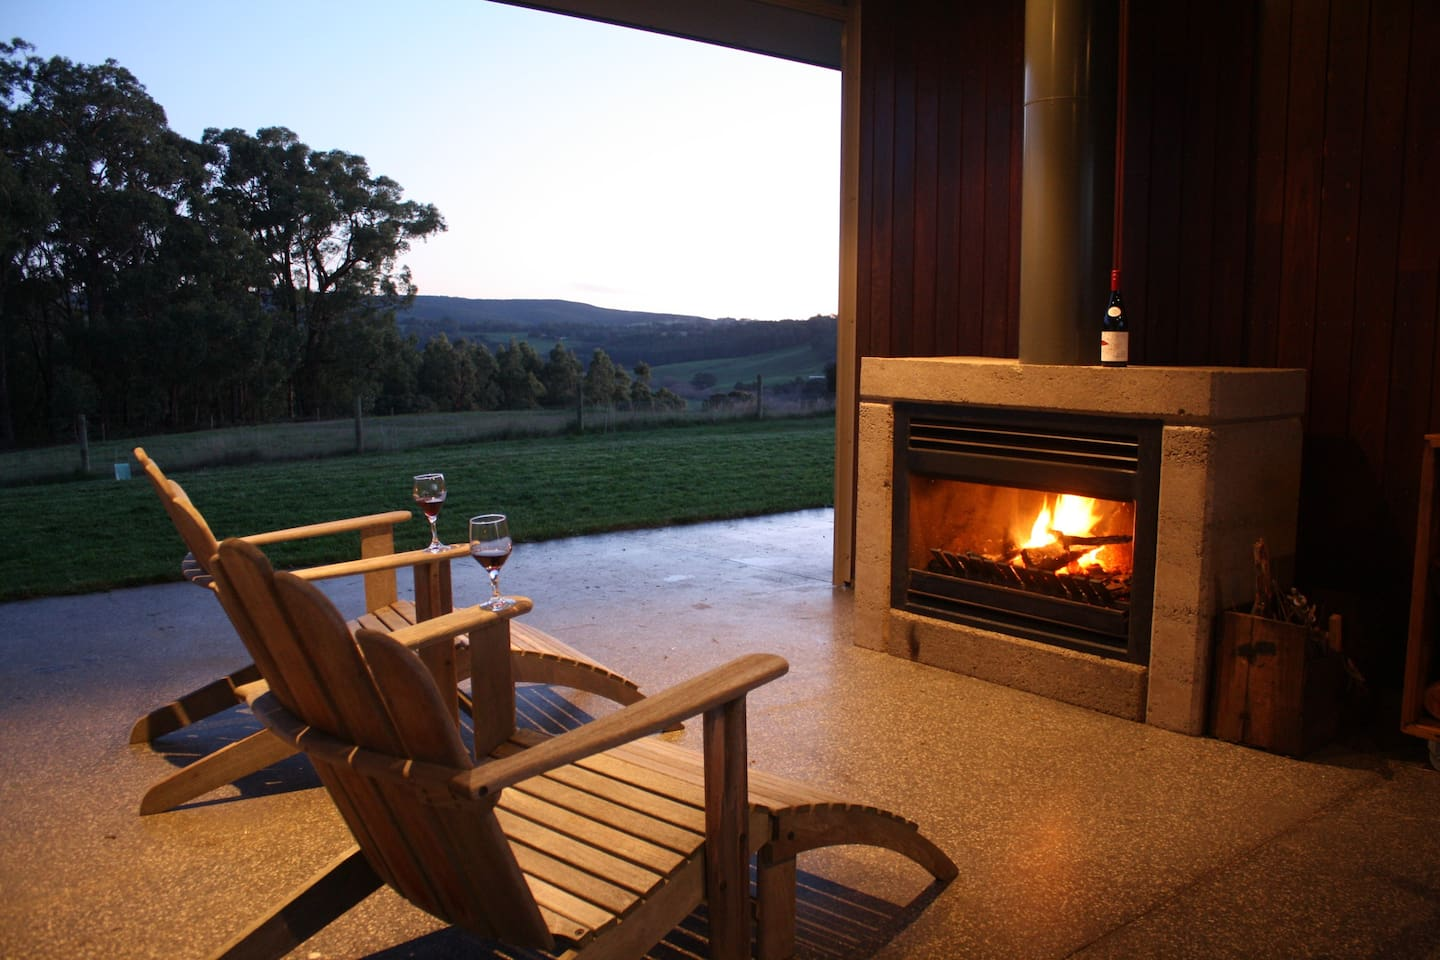 Outdoor fireplace with a view, marshmallows provided!